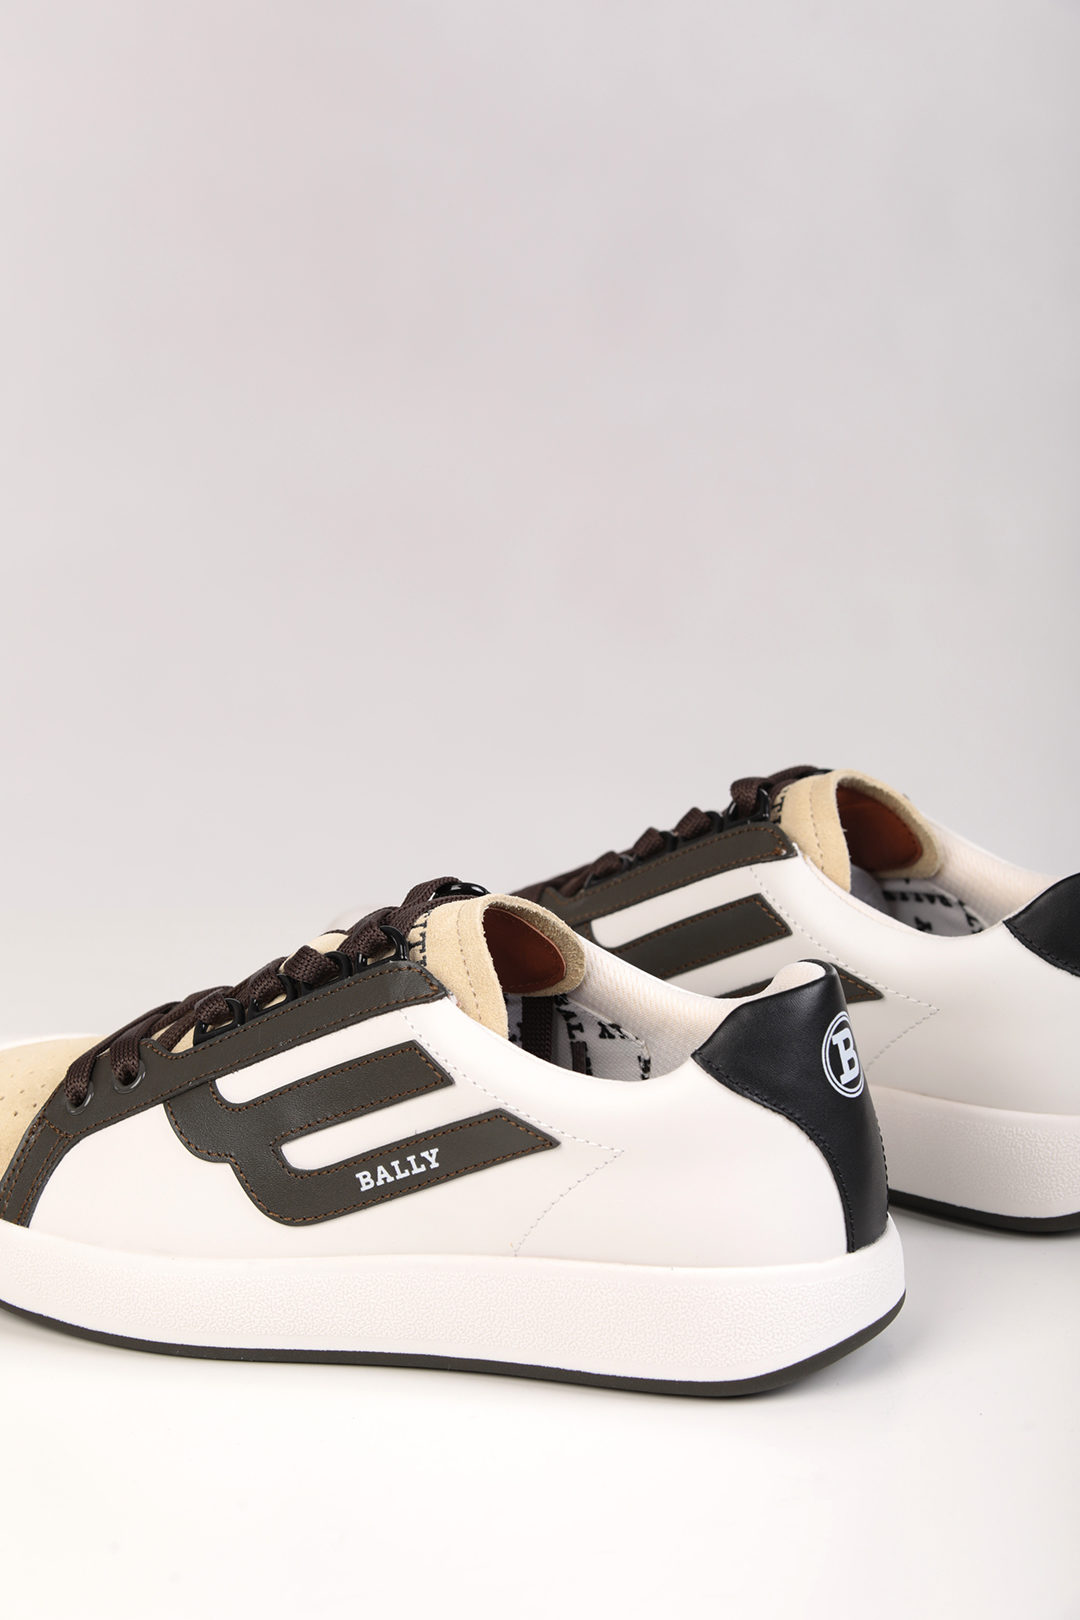 Bally Leather NEW COMPETITION 256